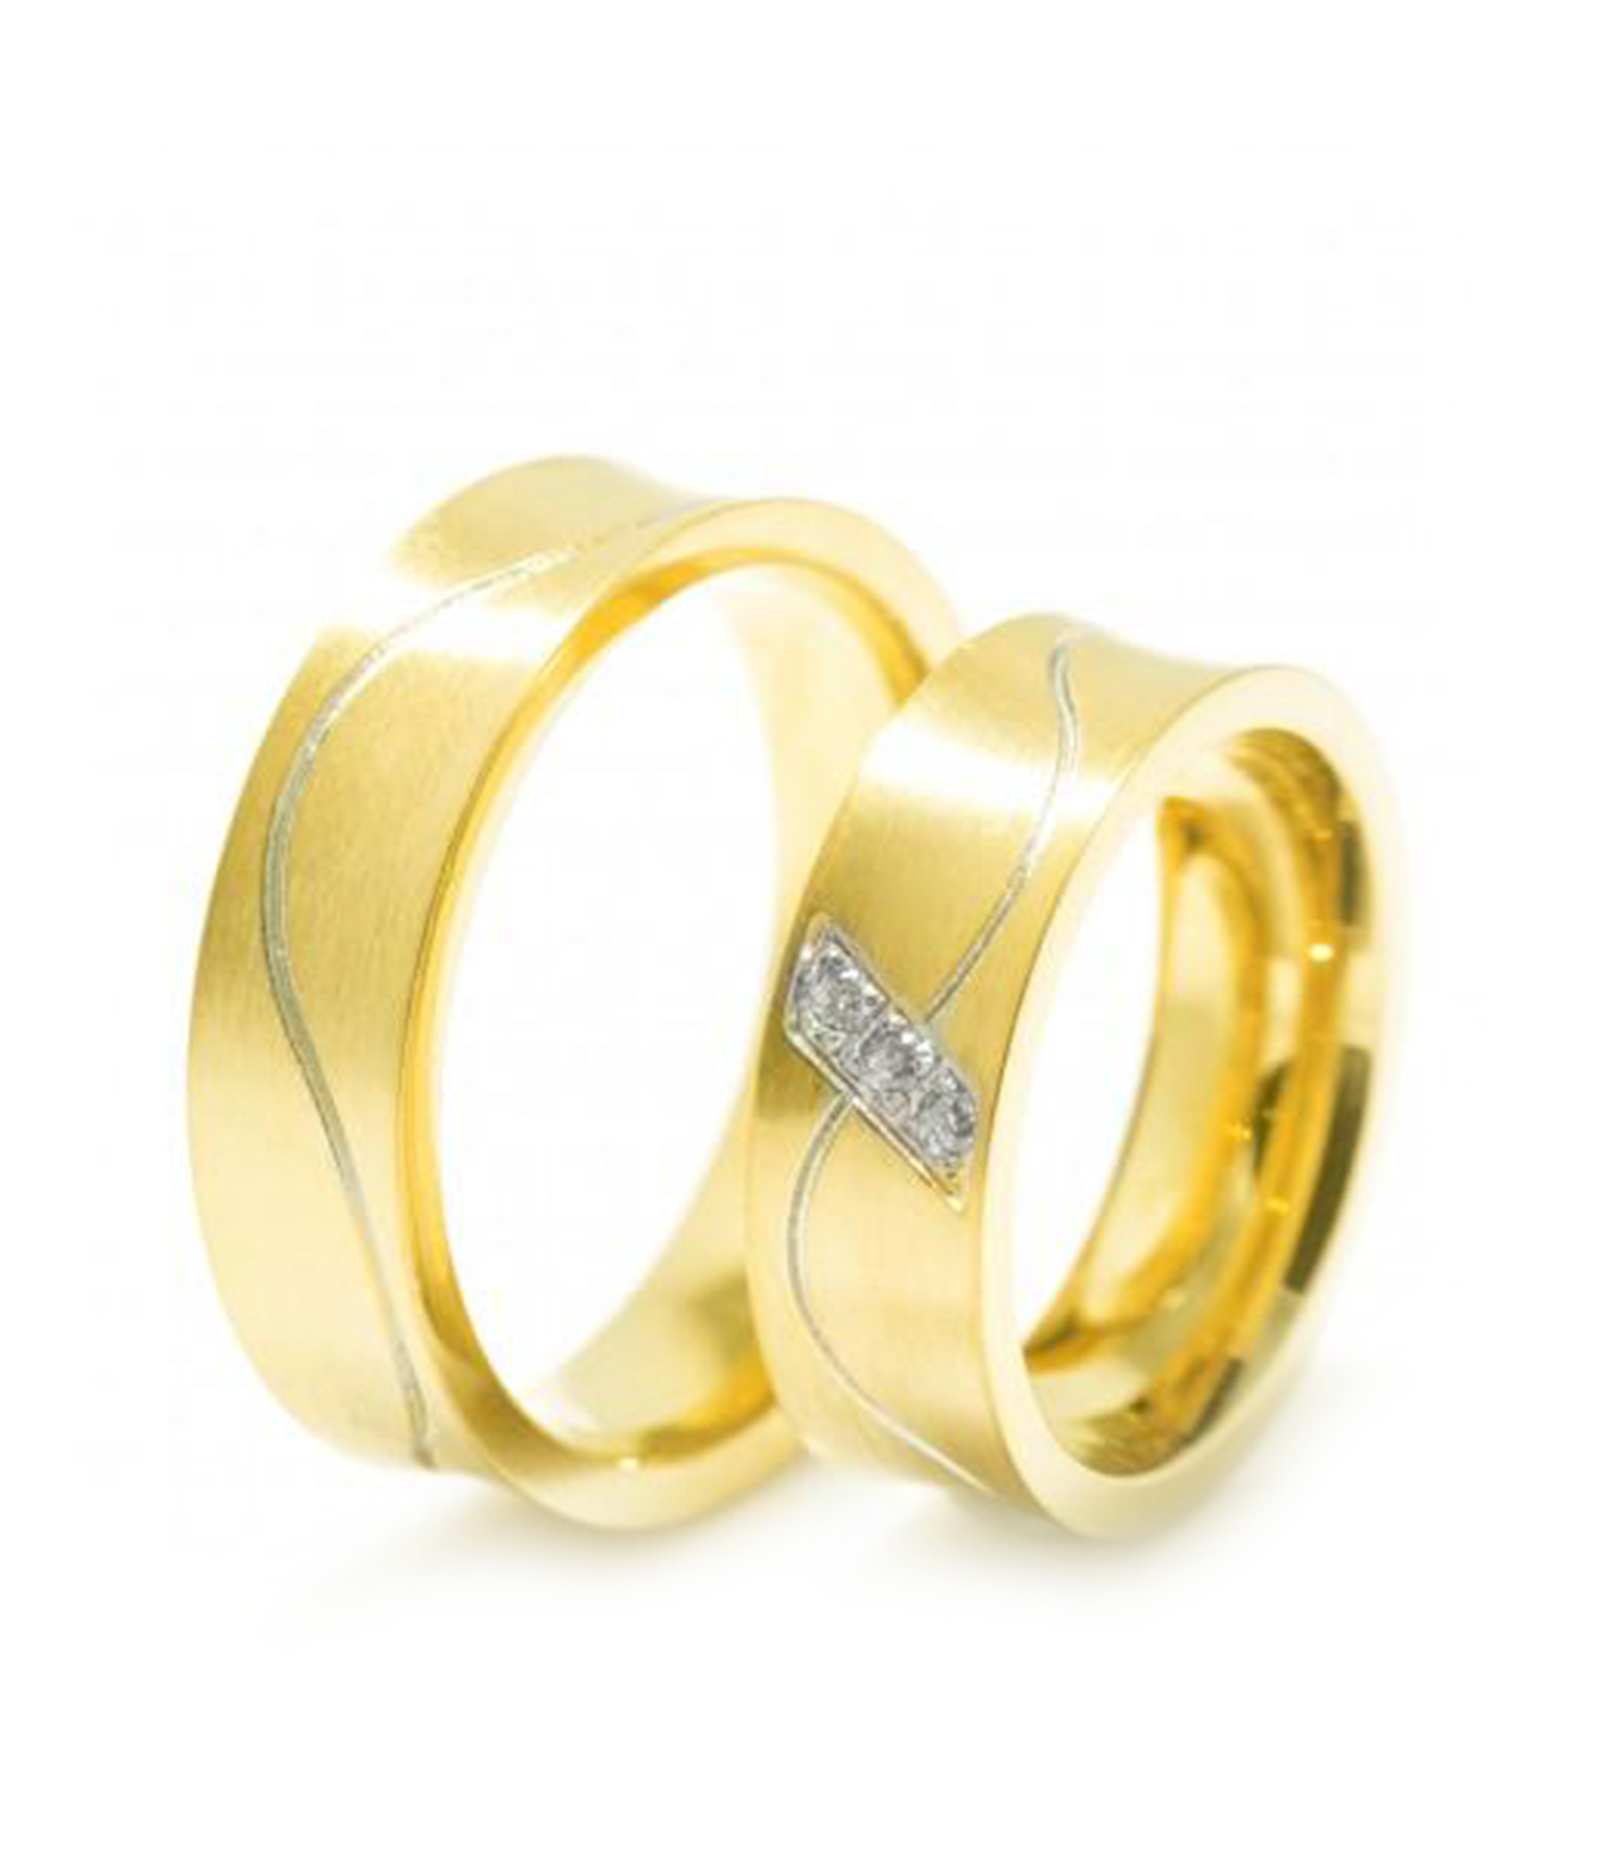 Serendipity Gold Plated Titanium Wedding Ring with Swarovski Crystals